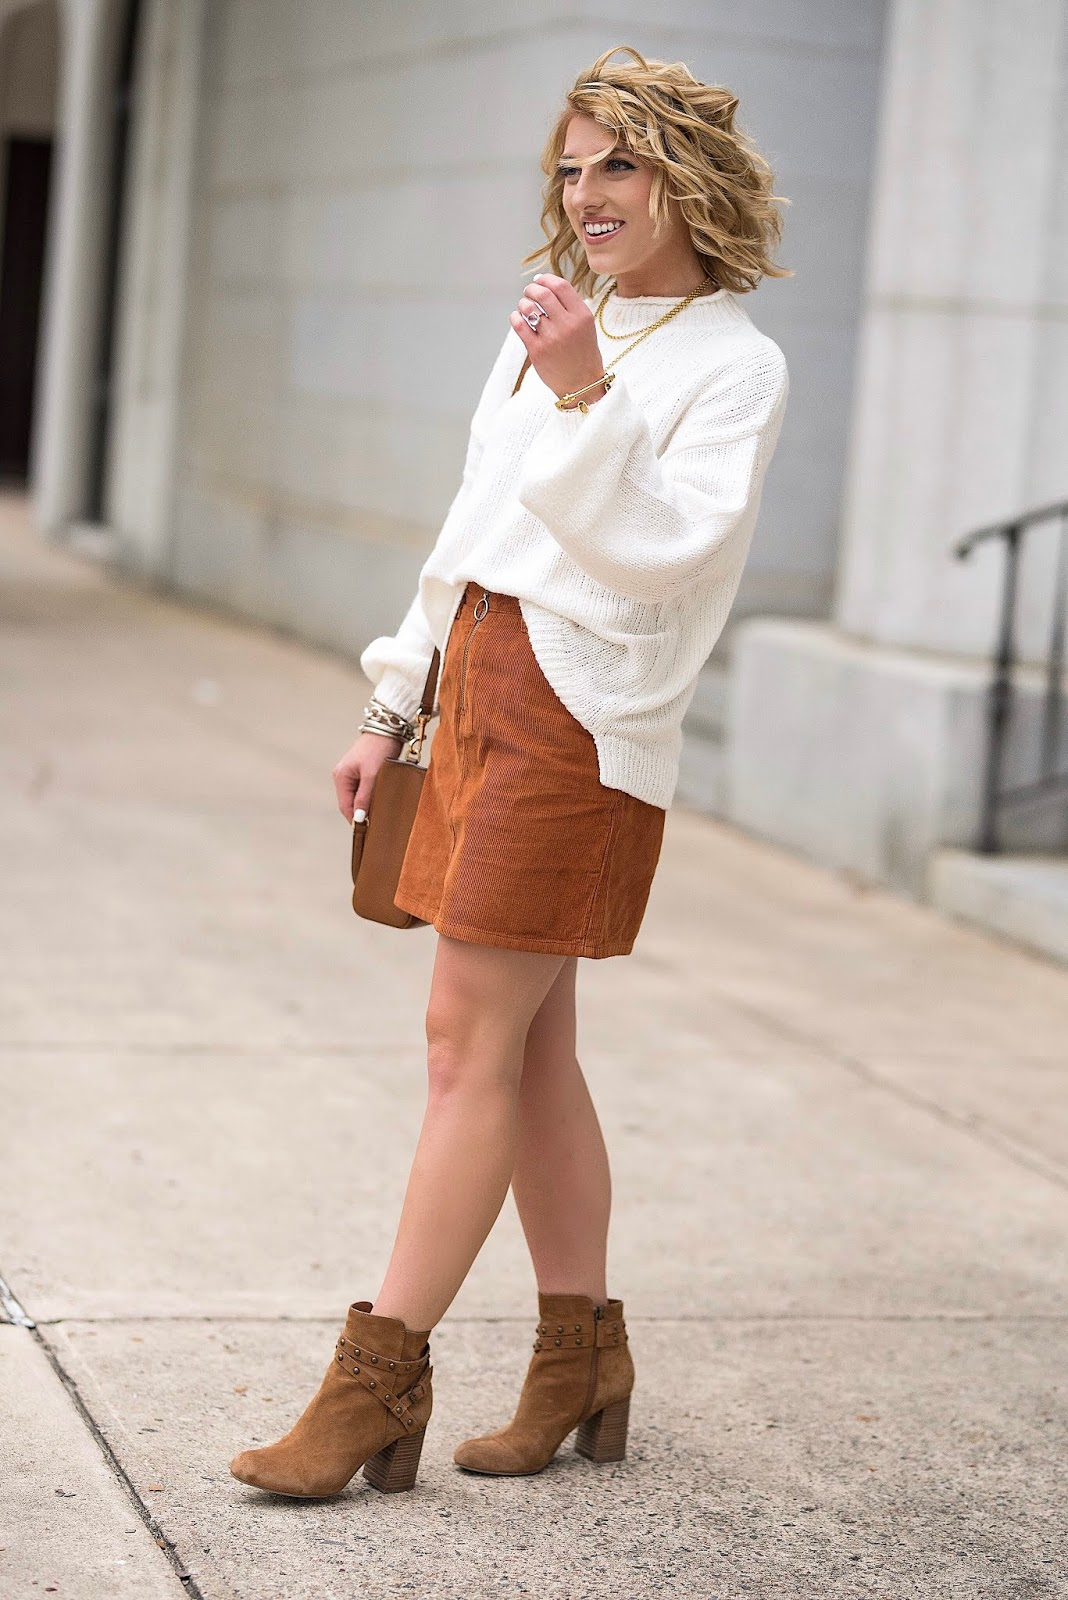 Nordstrom Anniversary Sale: Cord Mini Skirt Styled Two Ways - Something Delightful Blog